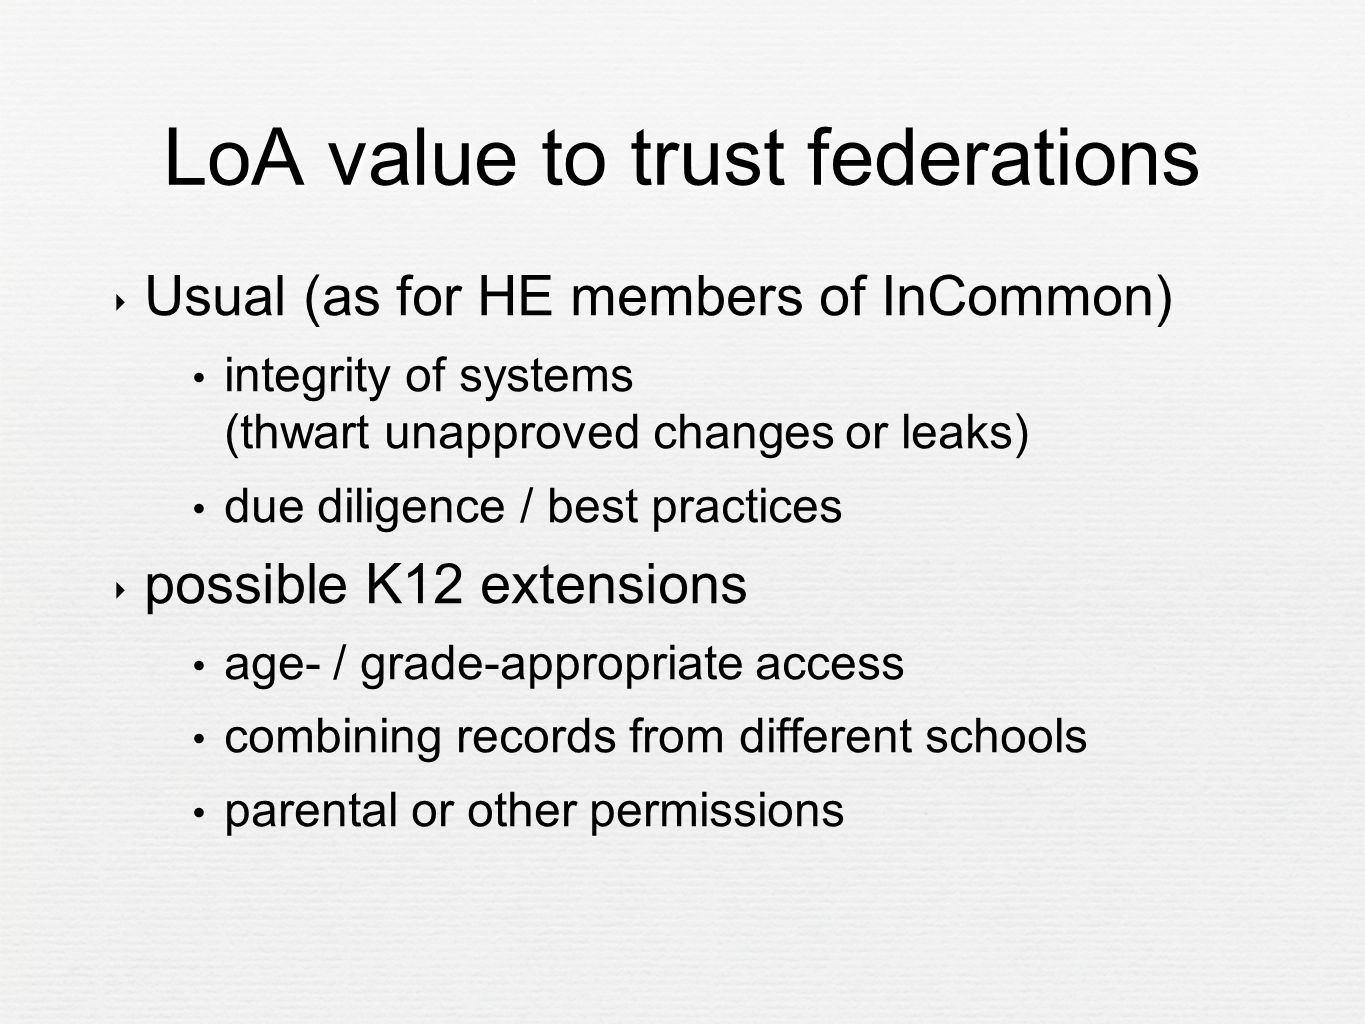 LoA value to trust federations ‣ Usual (as for HE members of InCommon) integrity of systems (thwart unapproved changes or leaks) due diligence / best practices ‣ possible K12 extensions age- / grade-appropriate access combining records from different schools parental or other permissions